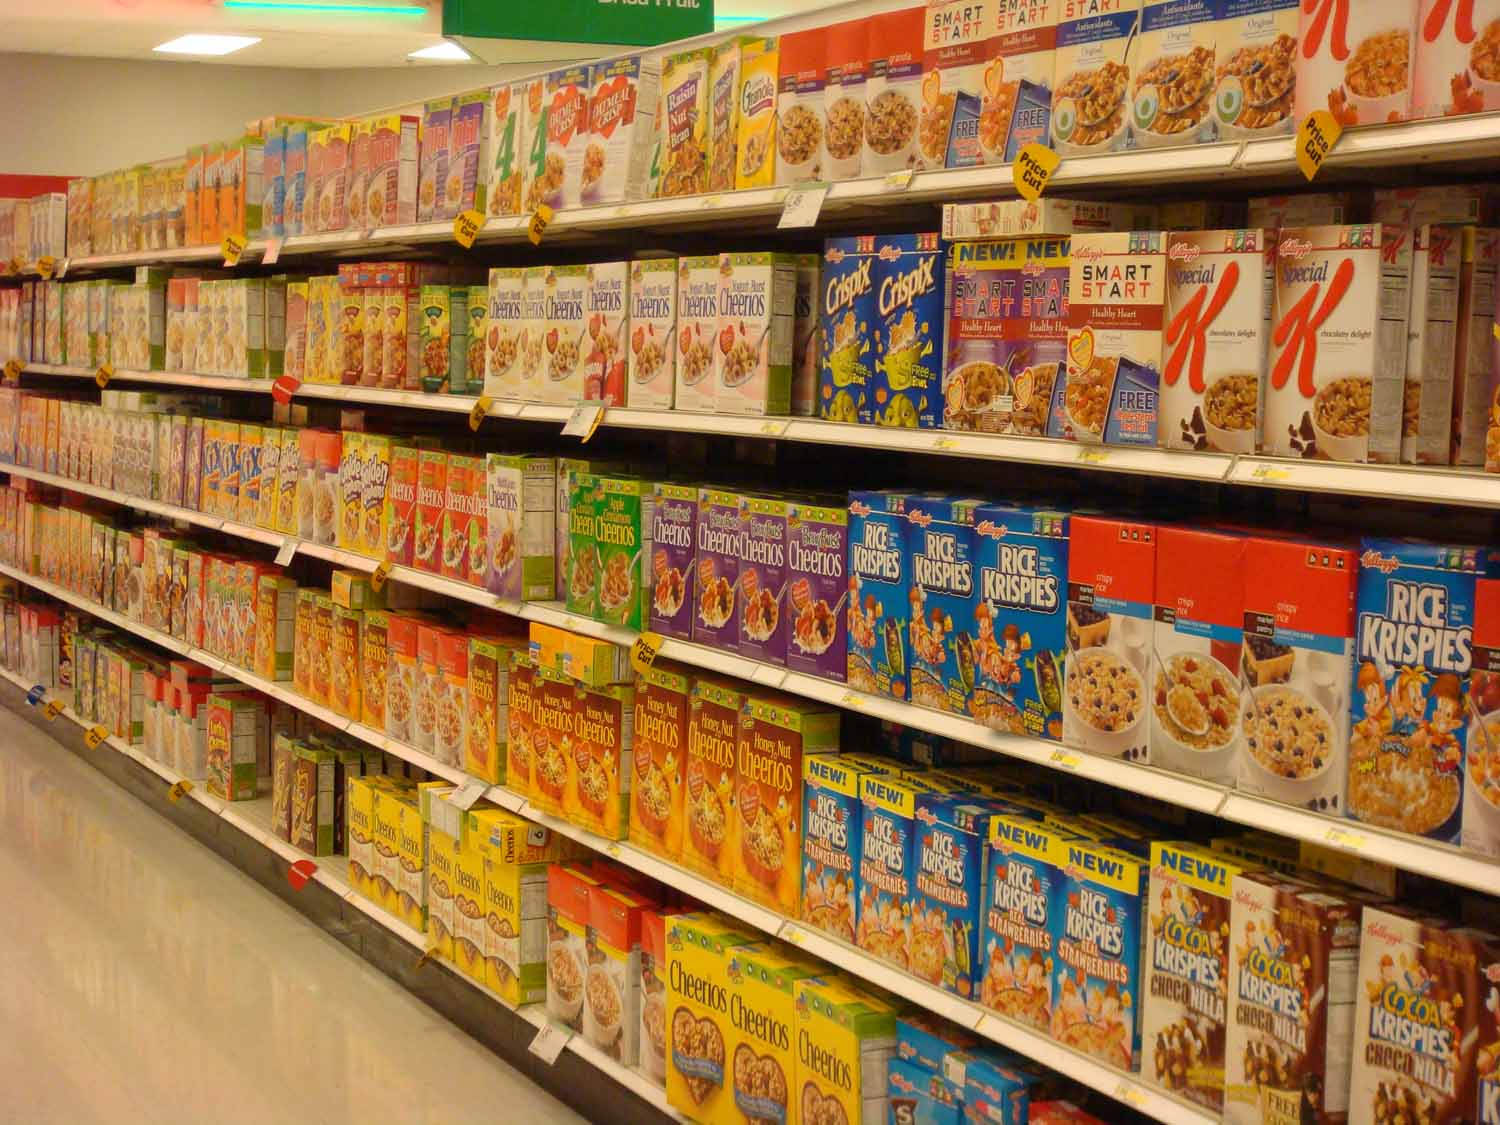 cereal aisle grocery supermarket food boxes diving cereals shelves organization consumer psych mind left perfect right into local items